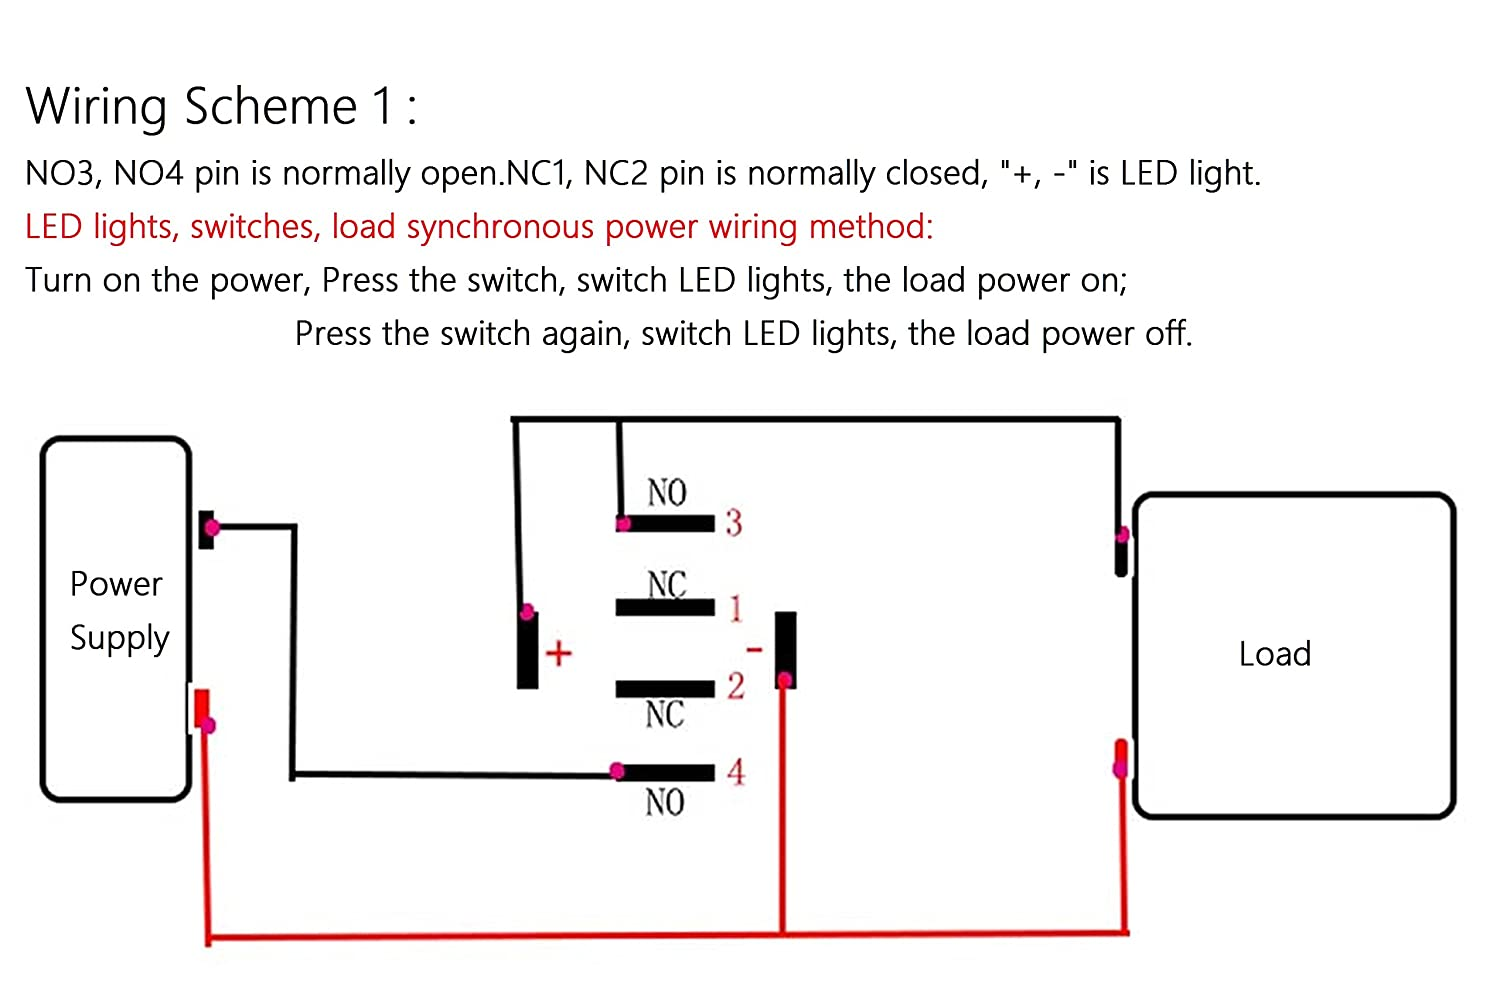 Knacro 30mm Metal Button Switch Momentary Push 3a Dc 12v Selflock Square Led Light Latching 24v Self Locking 2no 2nc Red Silver Alloy Contact Ip67 Ik10 For Car Diy